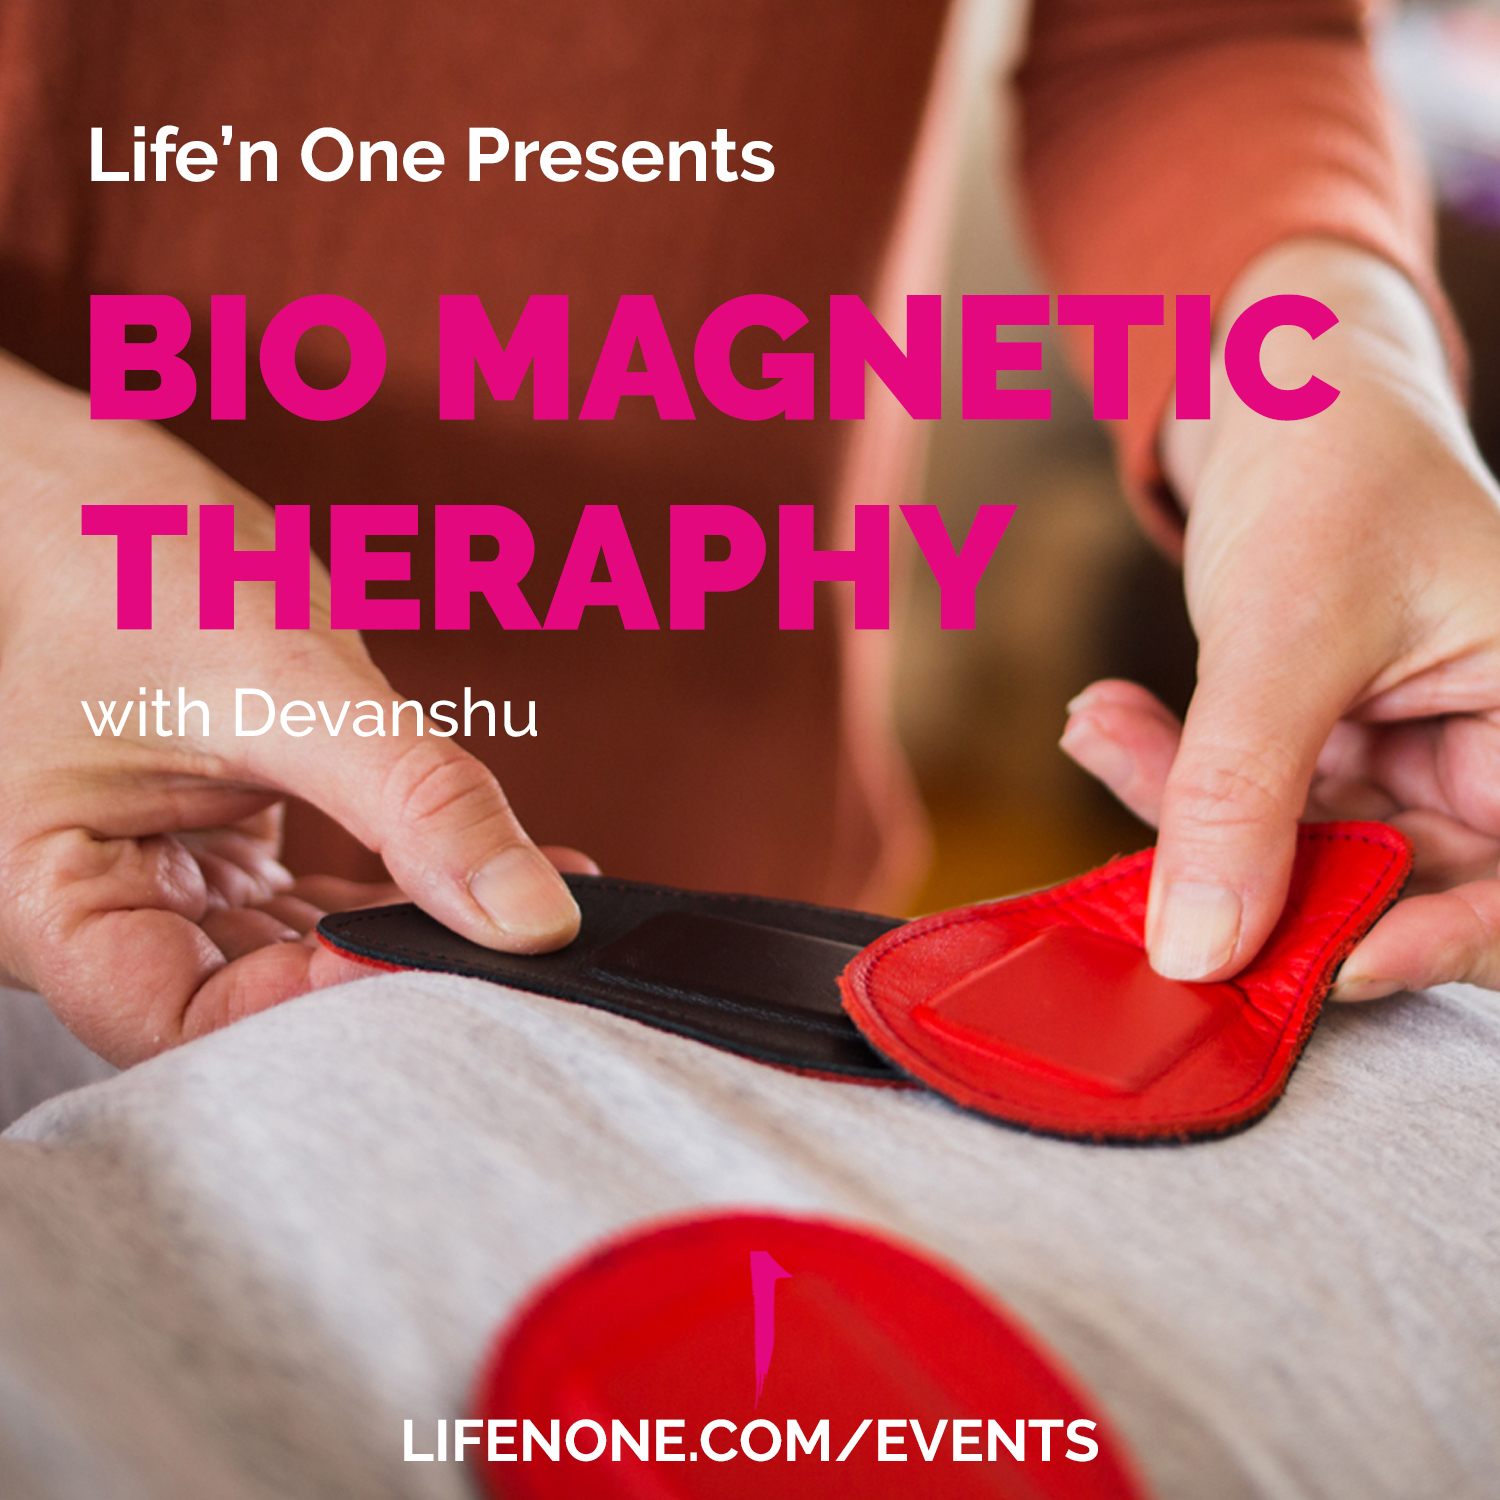 BIO MAGNETIC THERAPHY.jpg